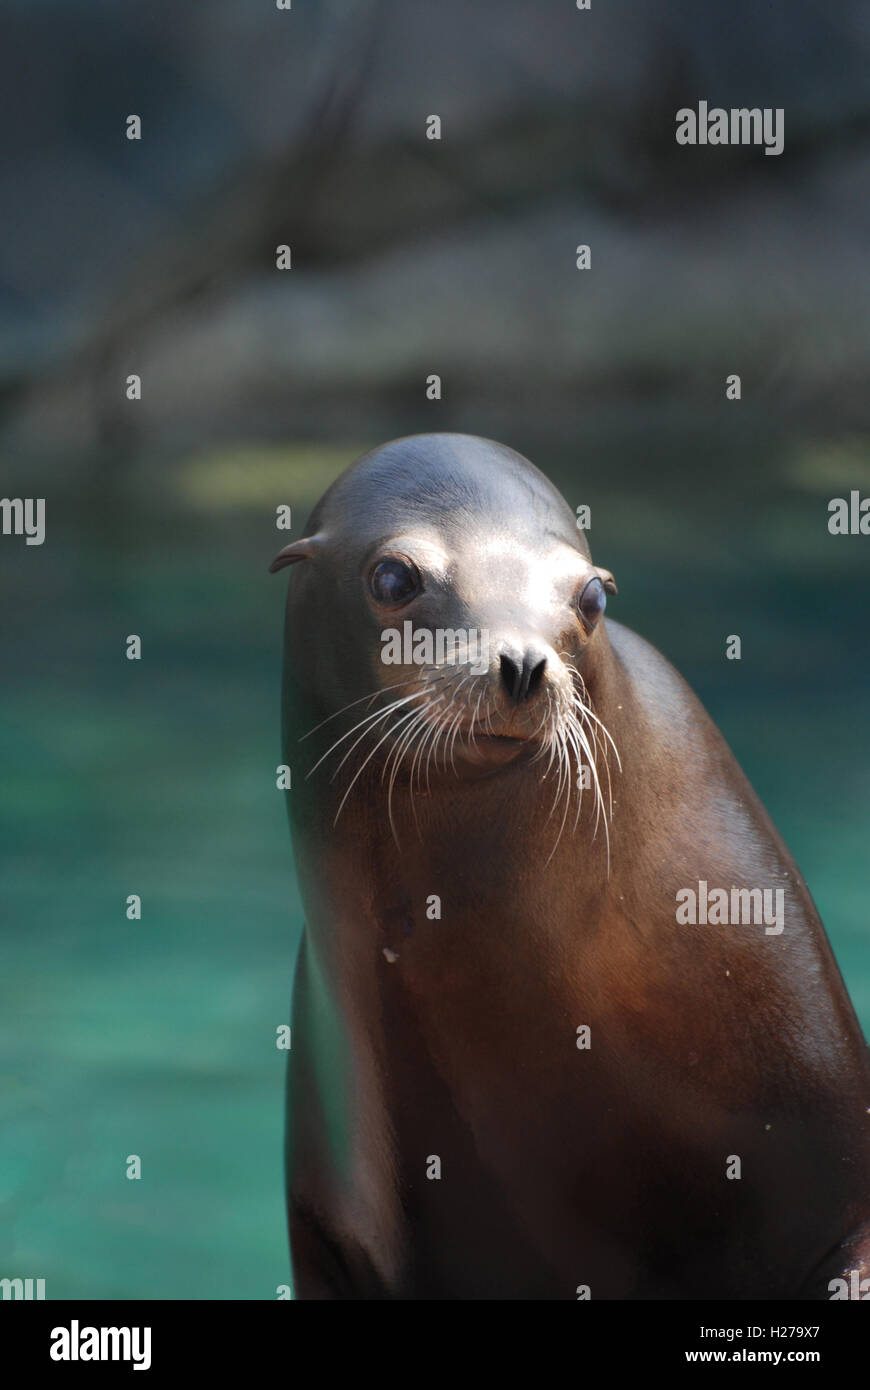 Really cute stellar sea lion beside the water. - Stock Image